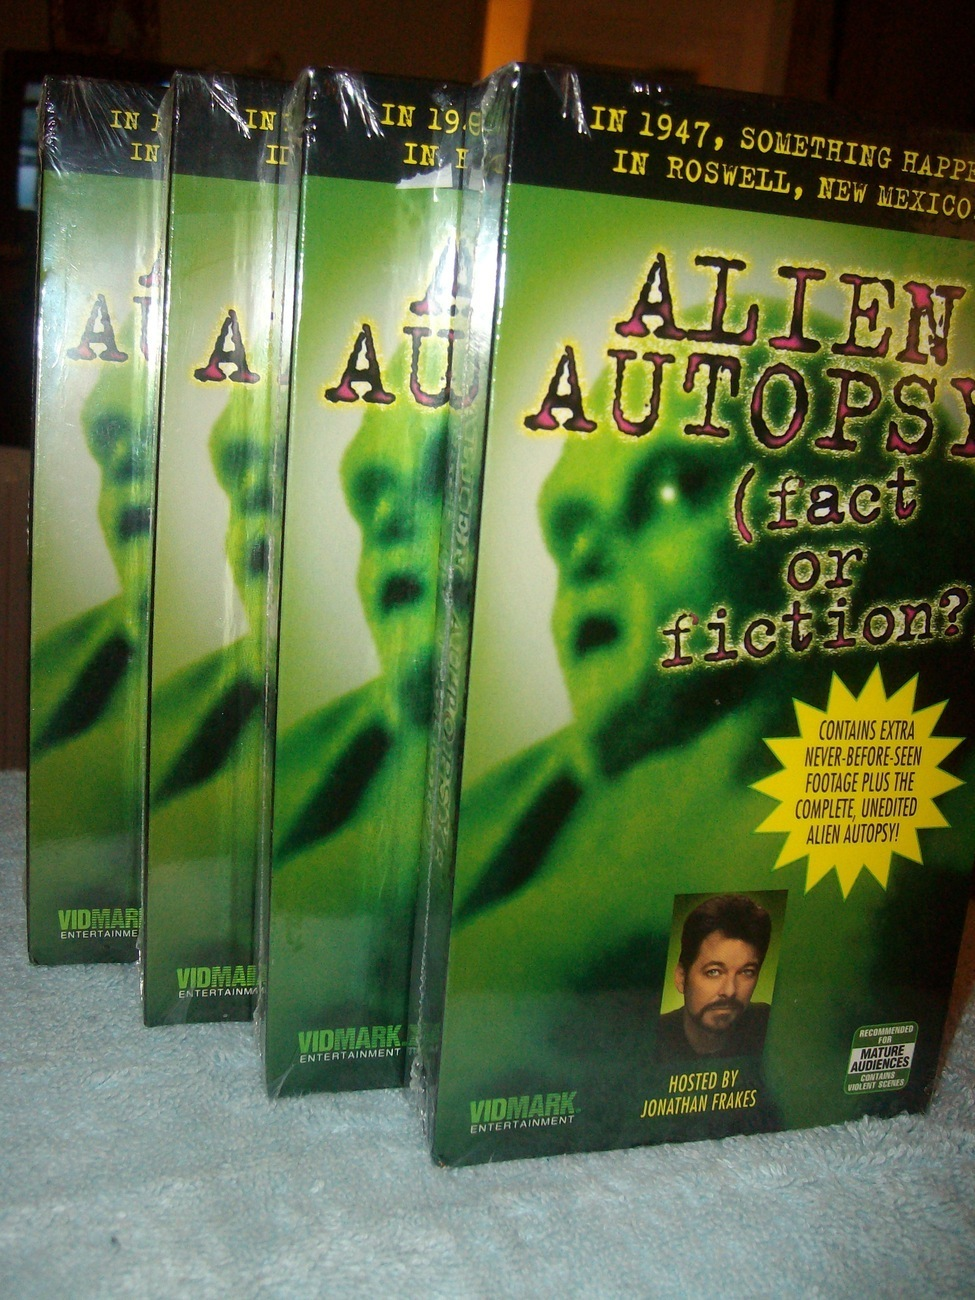 Four VHS Tapes Alien Abduction all Identical